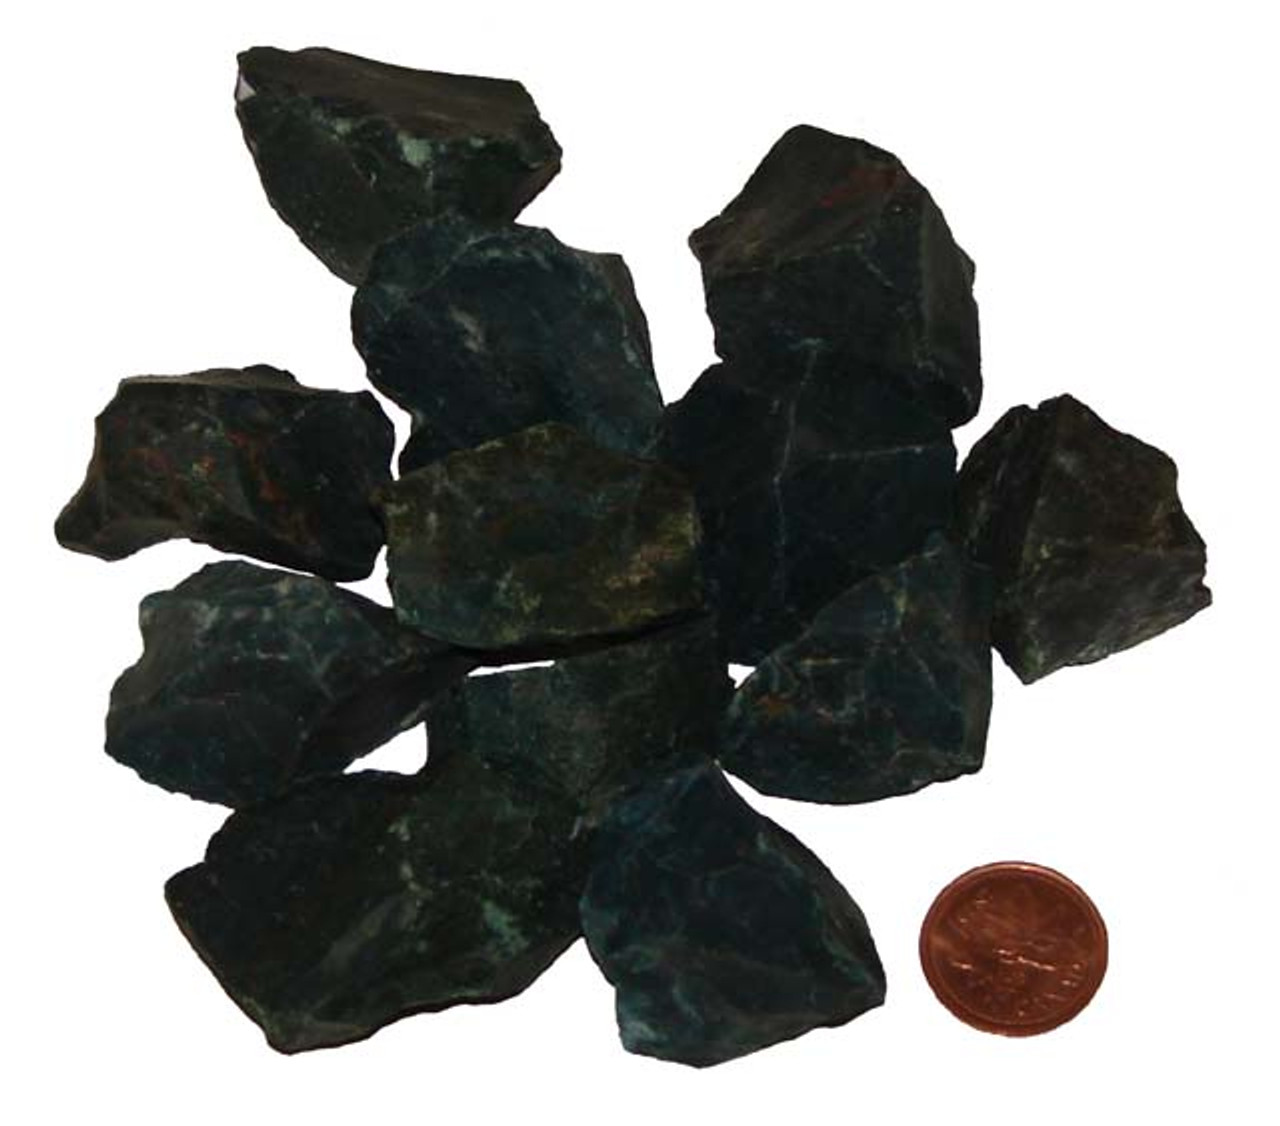 Bloodstone Raw Stones, Extra Large, 20-24 grams, approx  1-1/4 inches